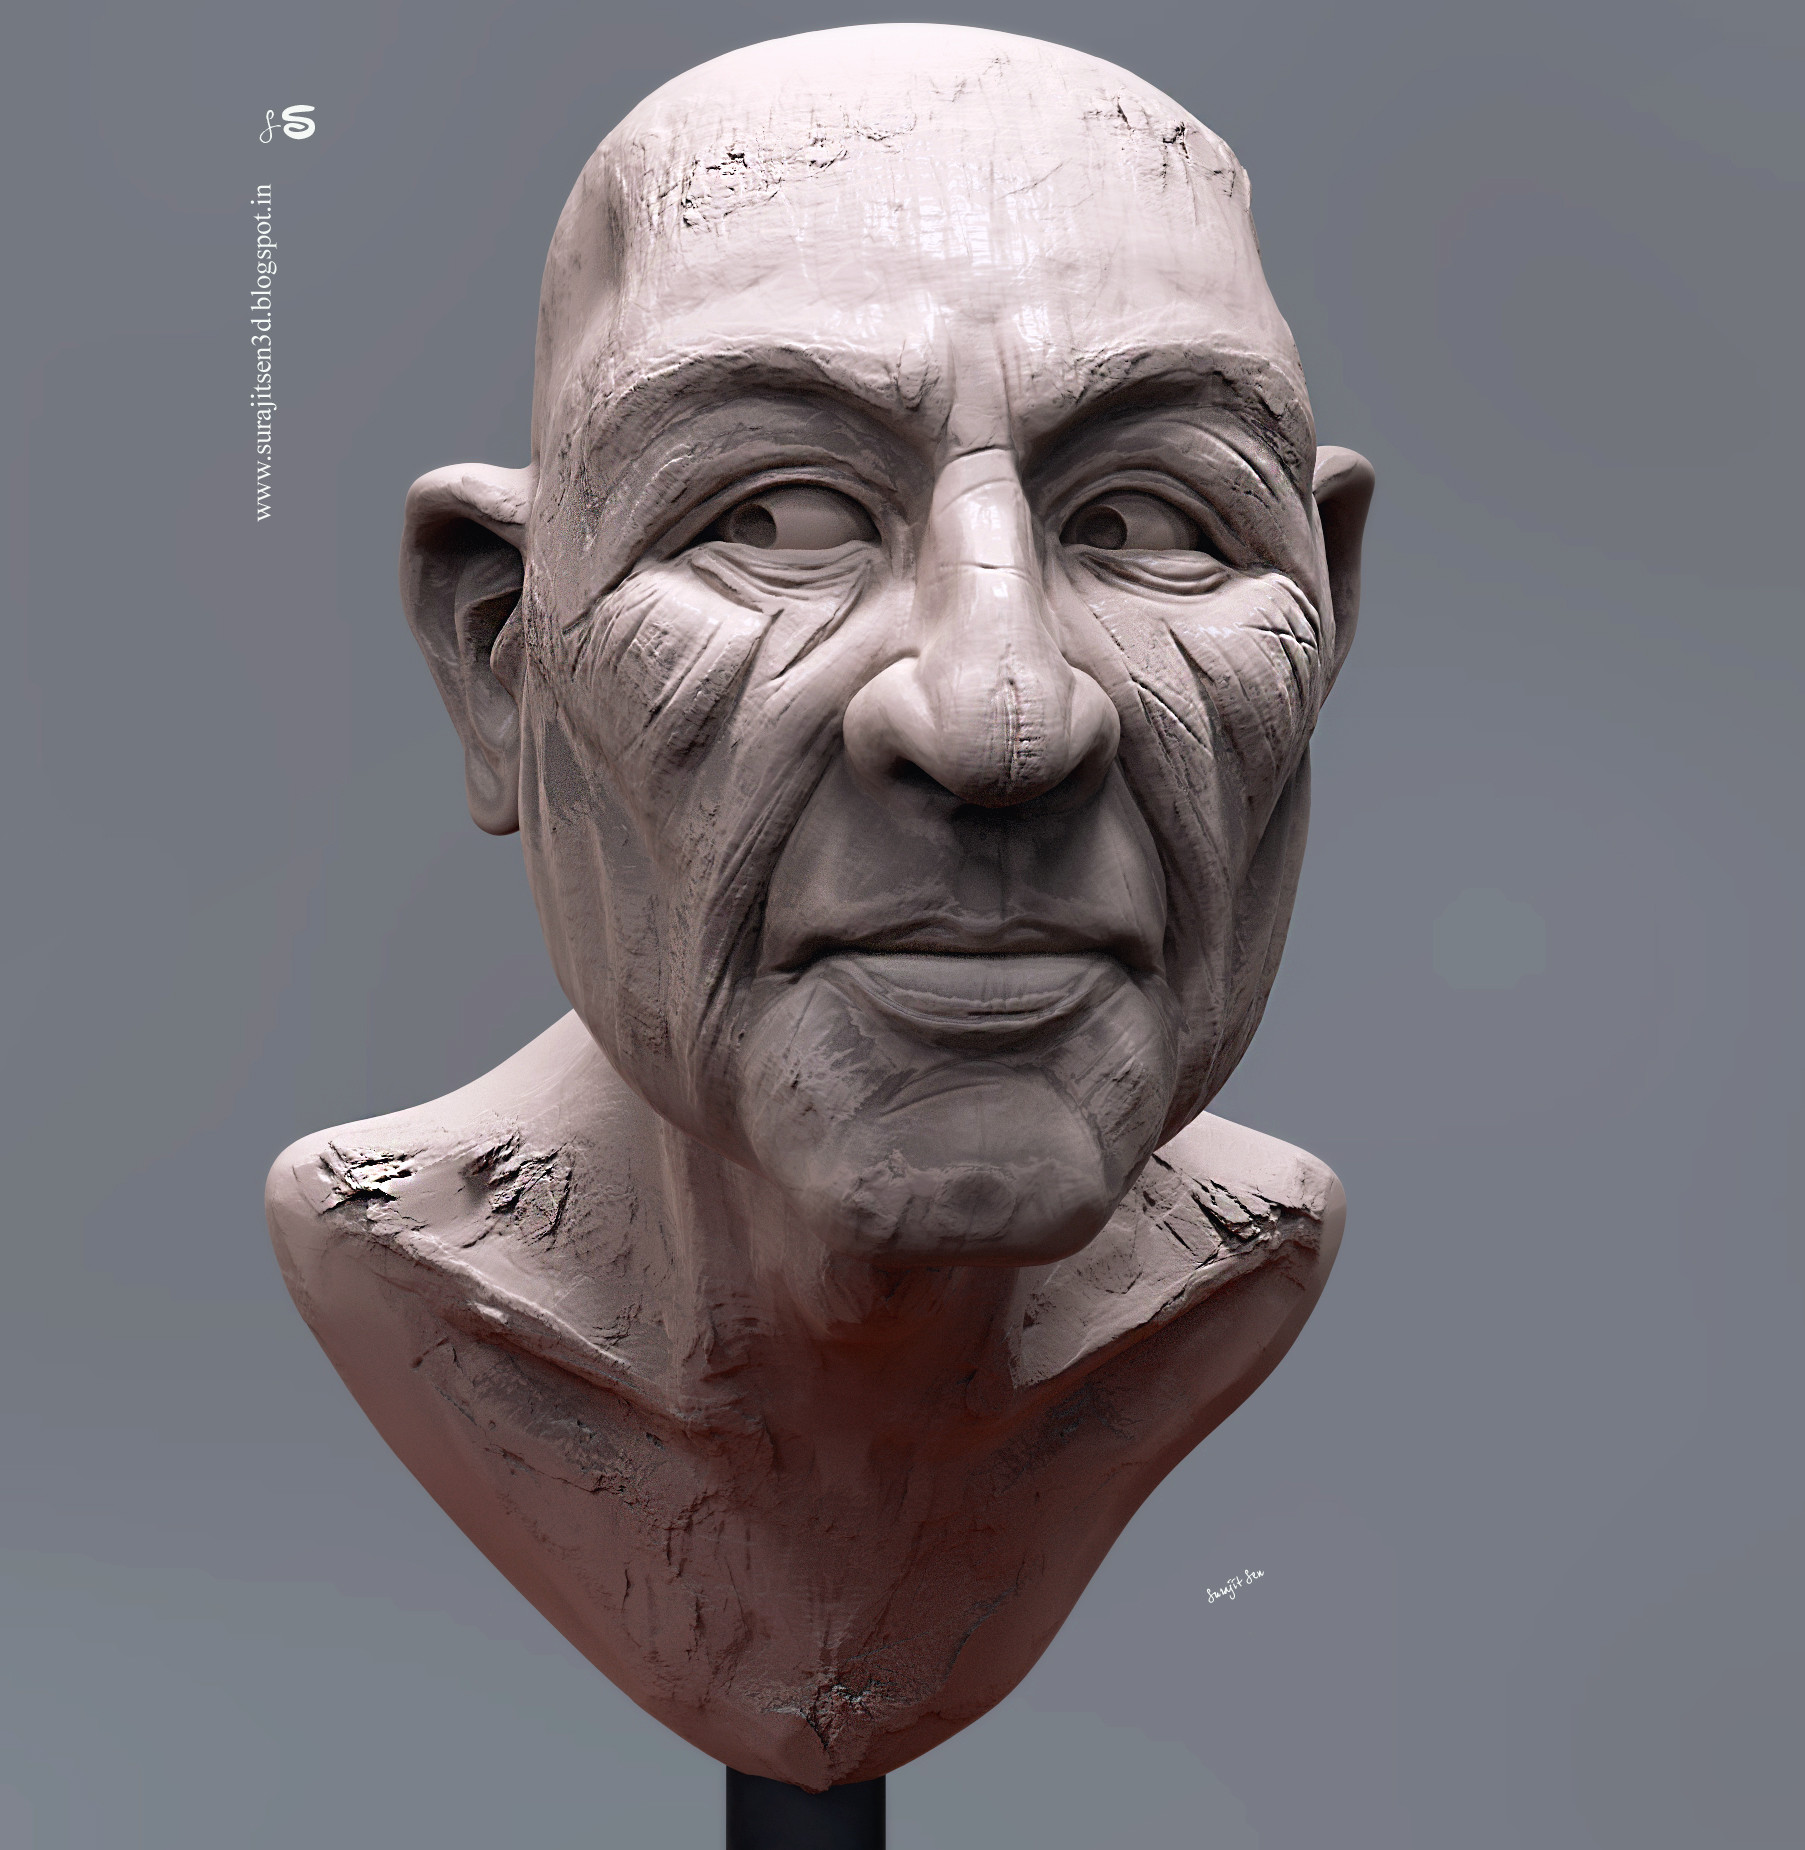 Surajit sen clever digital sculpt by surajitsen dec2018